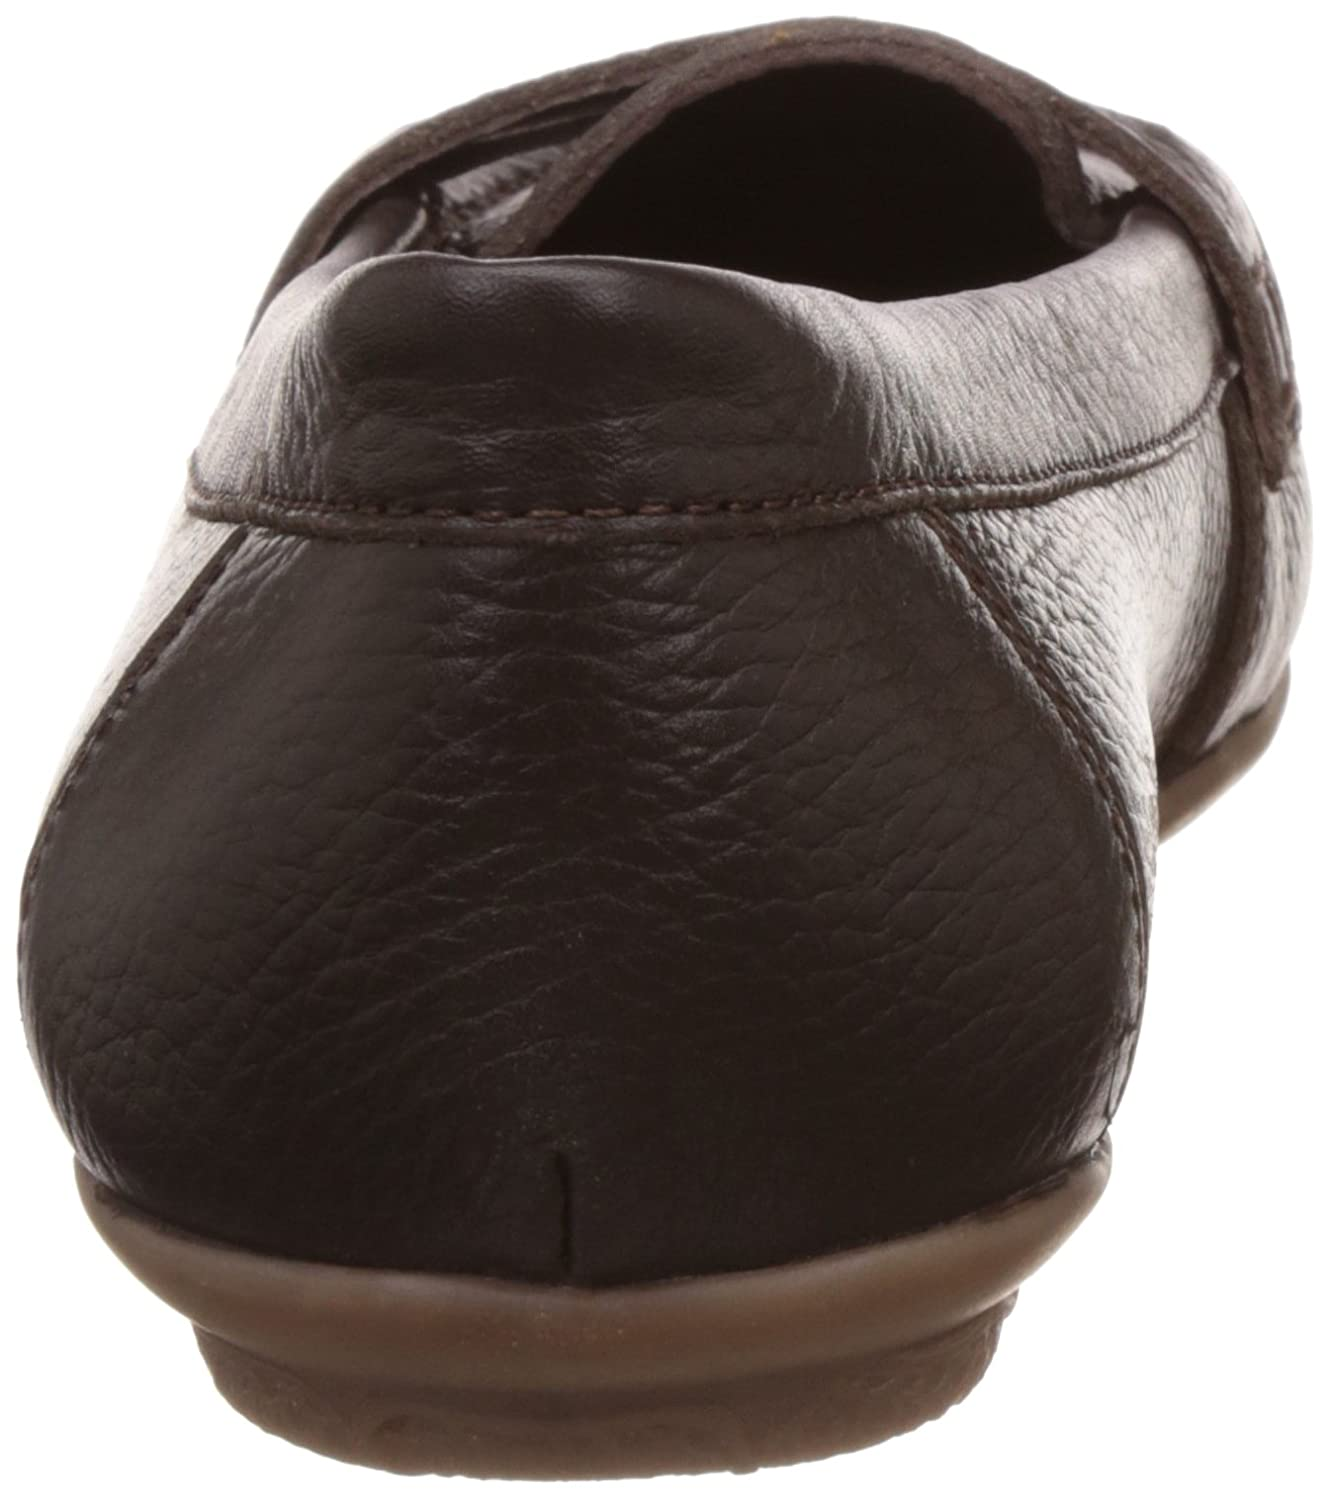 dfd56d1829c Hush Puppies Women s Ceil Penny Brown Leather Loafers and Mocassins - 8 UK  India (41 EU)(5544942)  Buy Online at Low Prices in India - Amazon.in